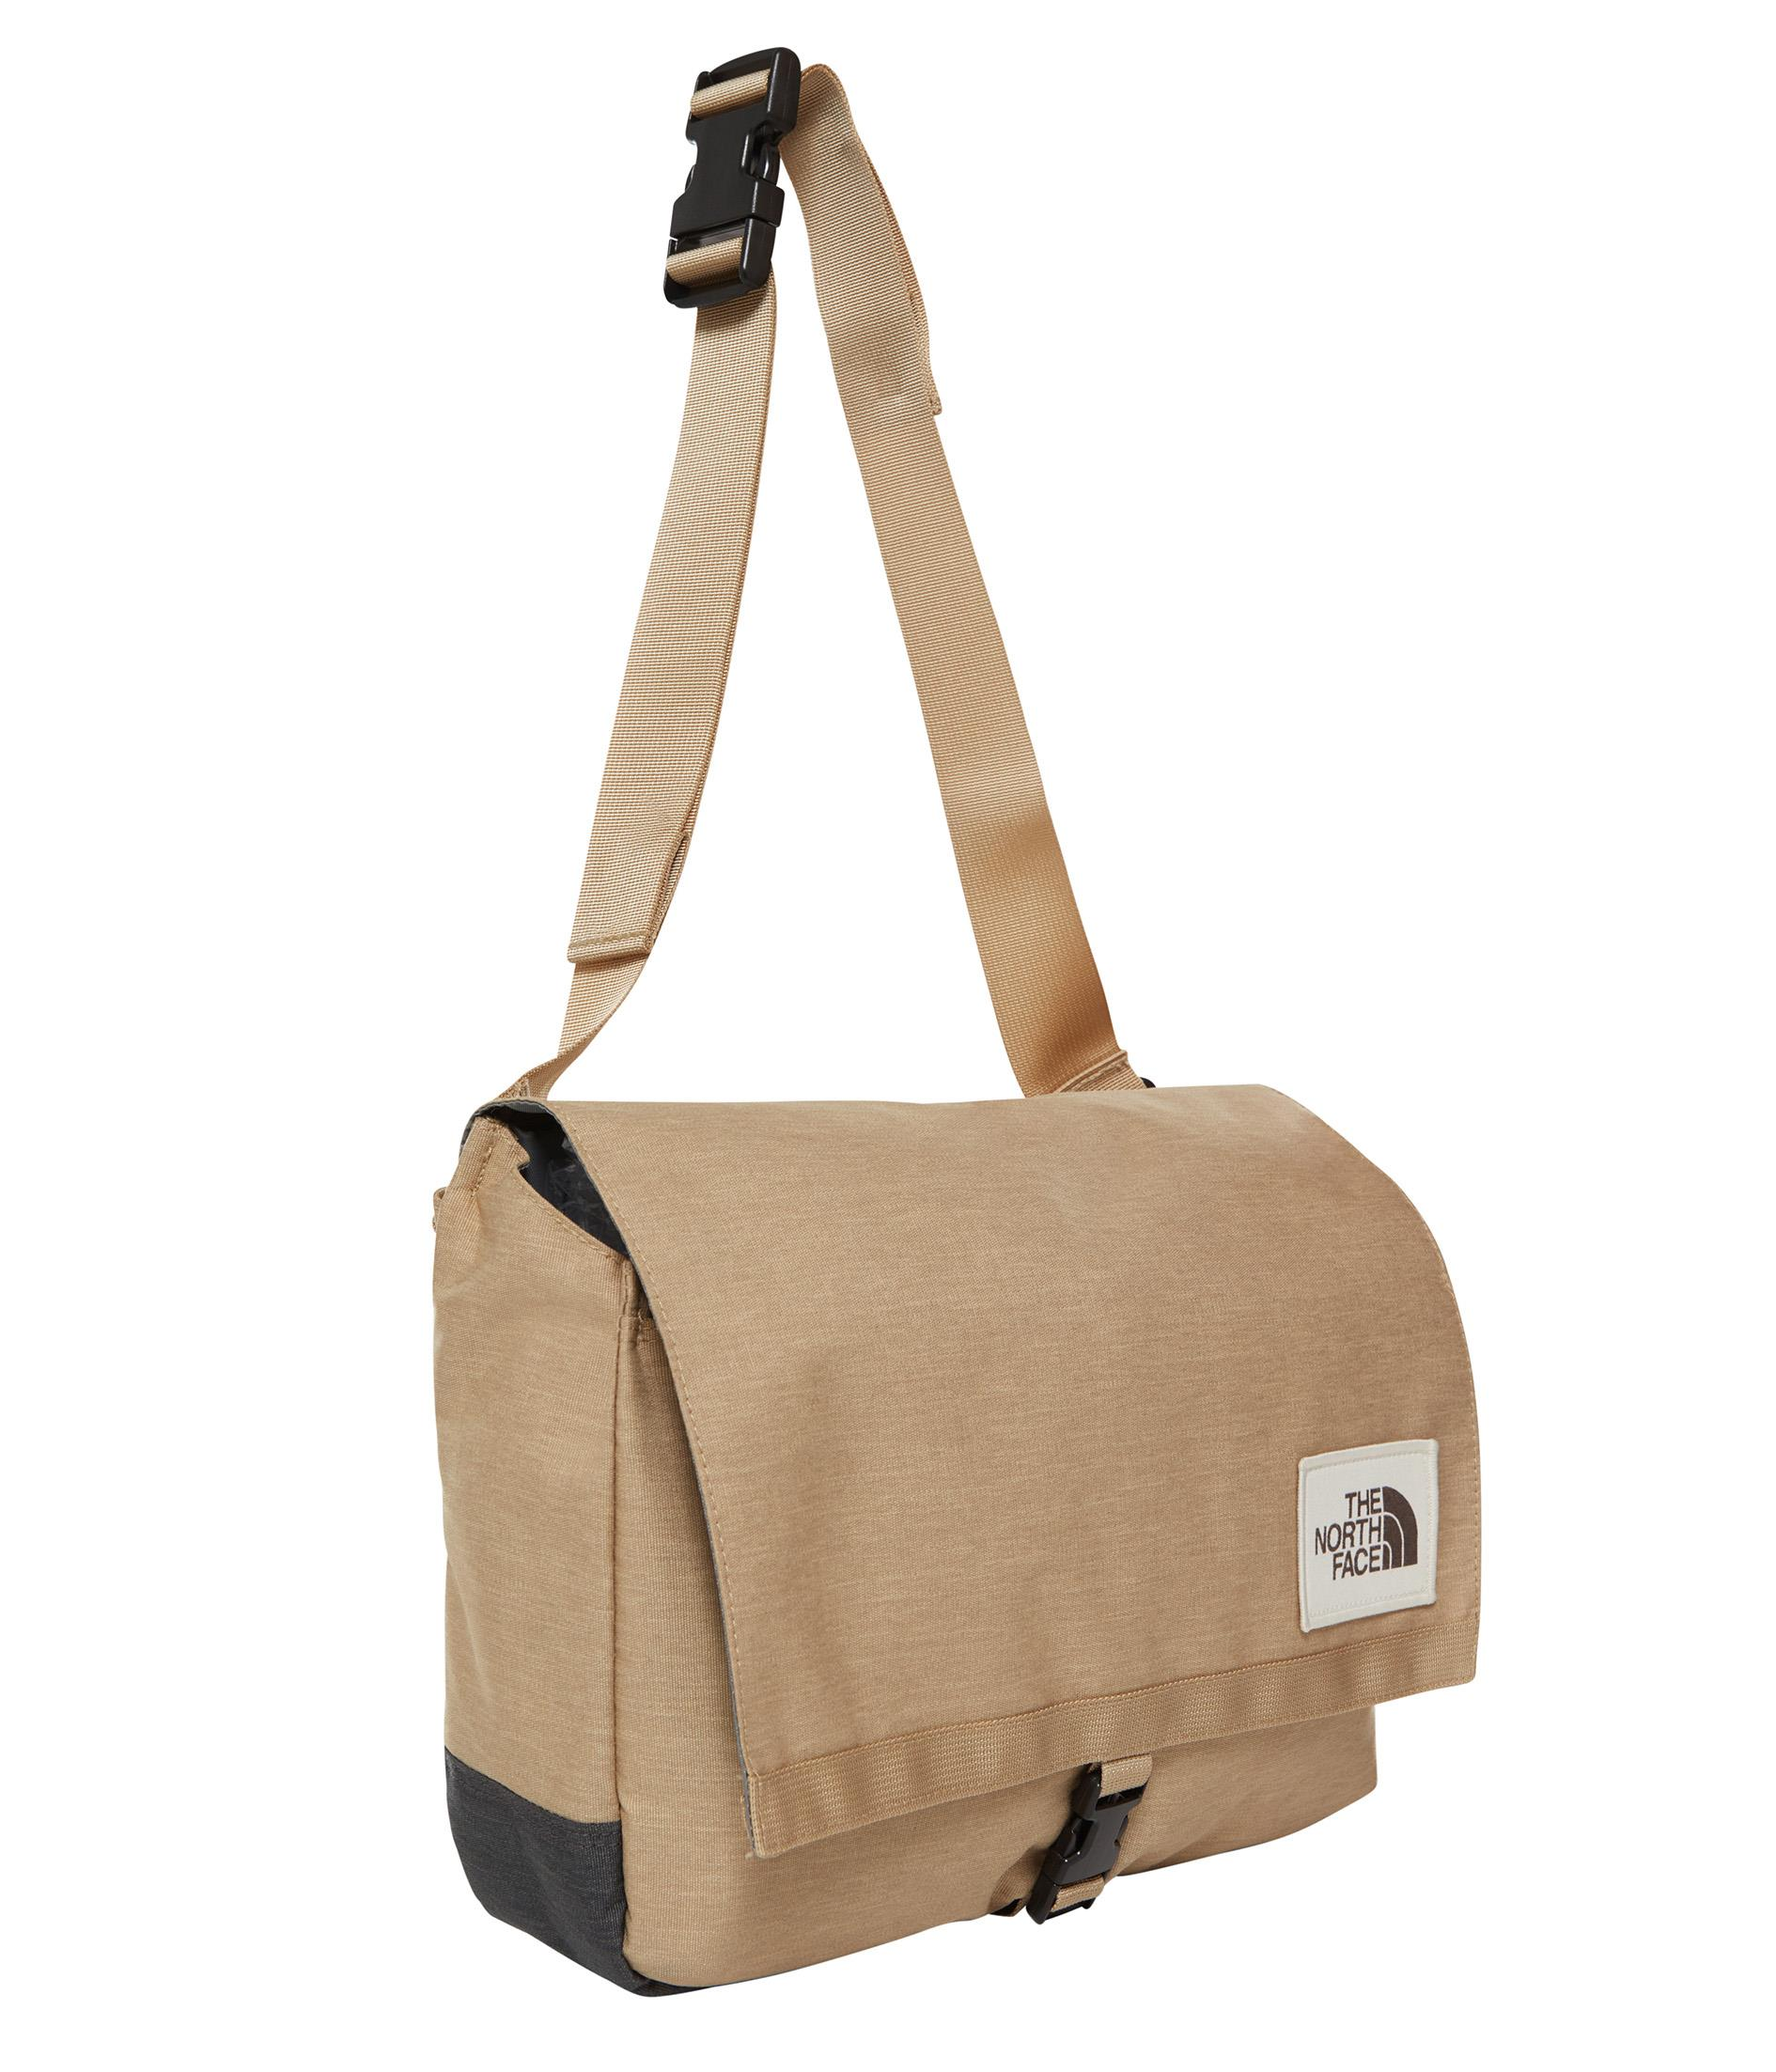 The Northface Berkeley Satchel T93Kwjby4 Çanta